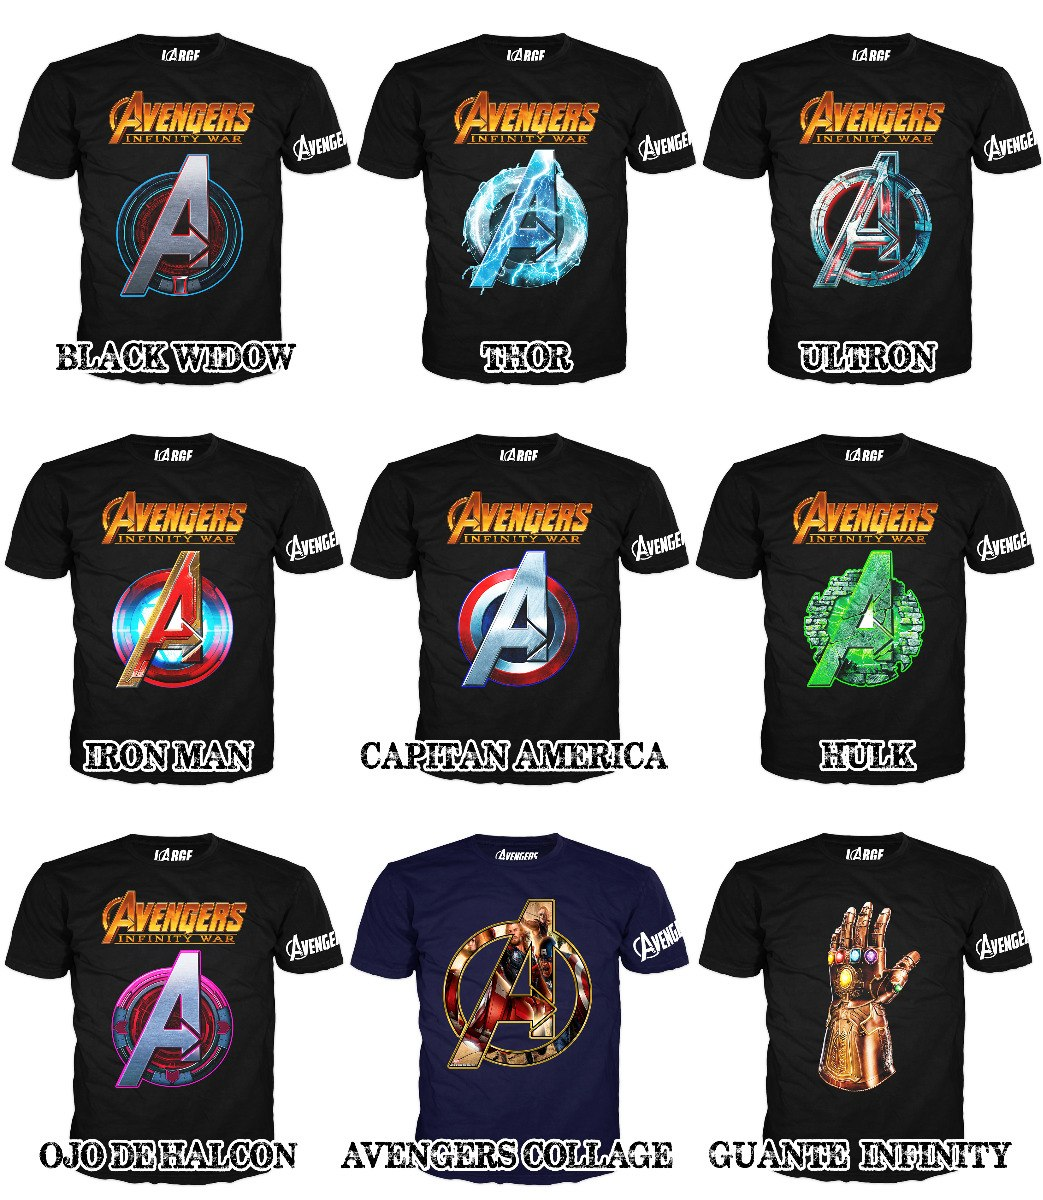 Aquaman Playera Super Heroes Justice League Avengers -   180.00 en ... f6b3509d34aff